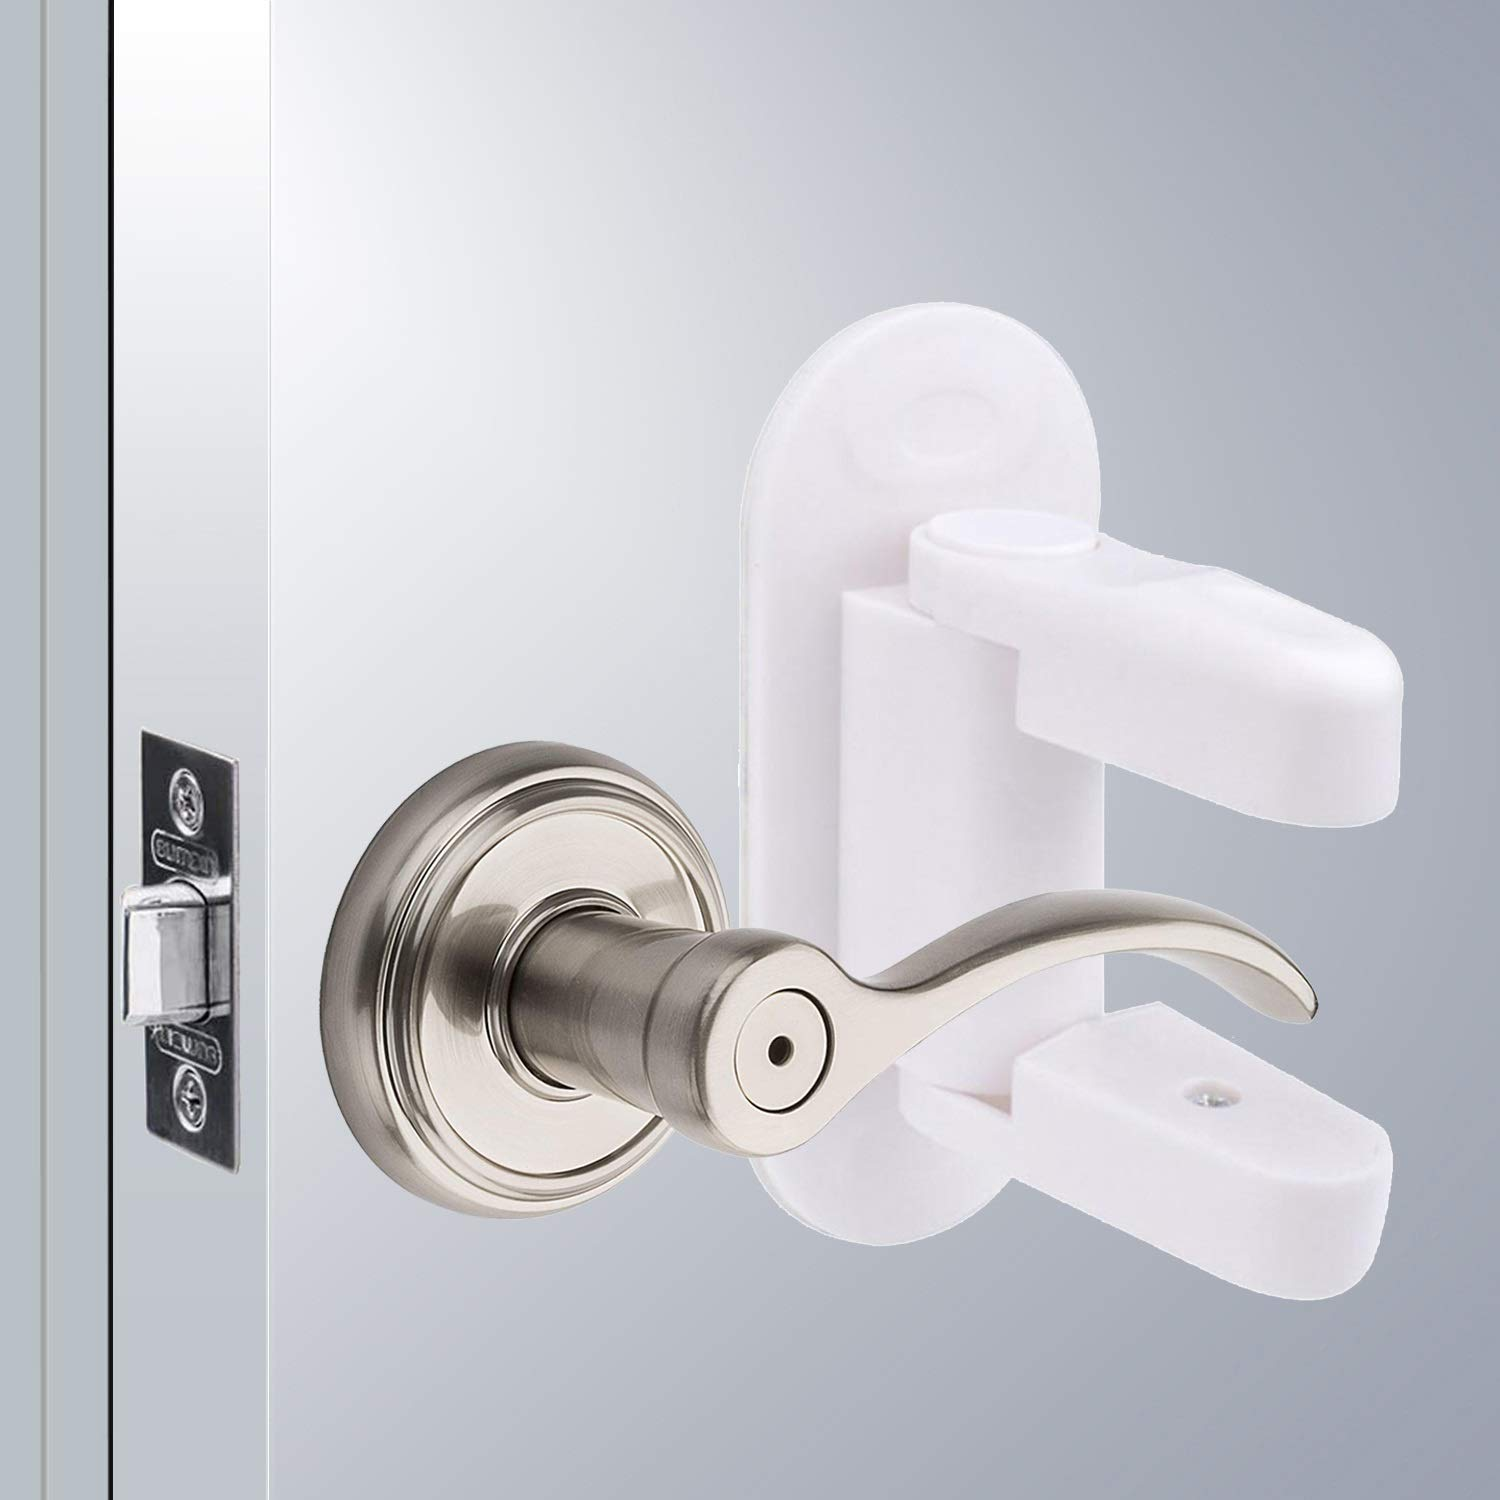 Child Proof Door Lever Lock - OKEFAN 4 Pack Childproof Safety Baby Door Handle Locks for Kids Adhesive Proofing Doors No Drilling Tools Needed